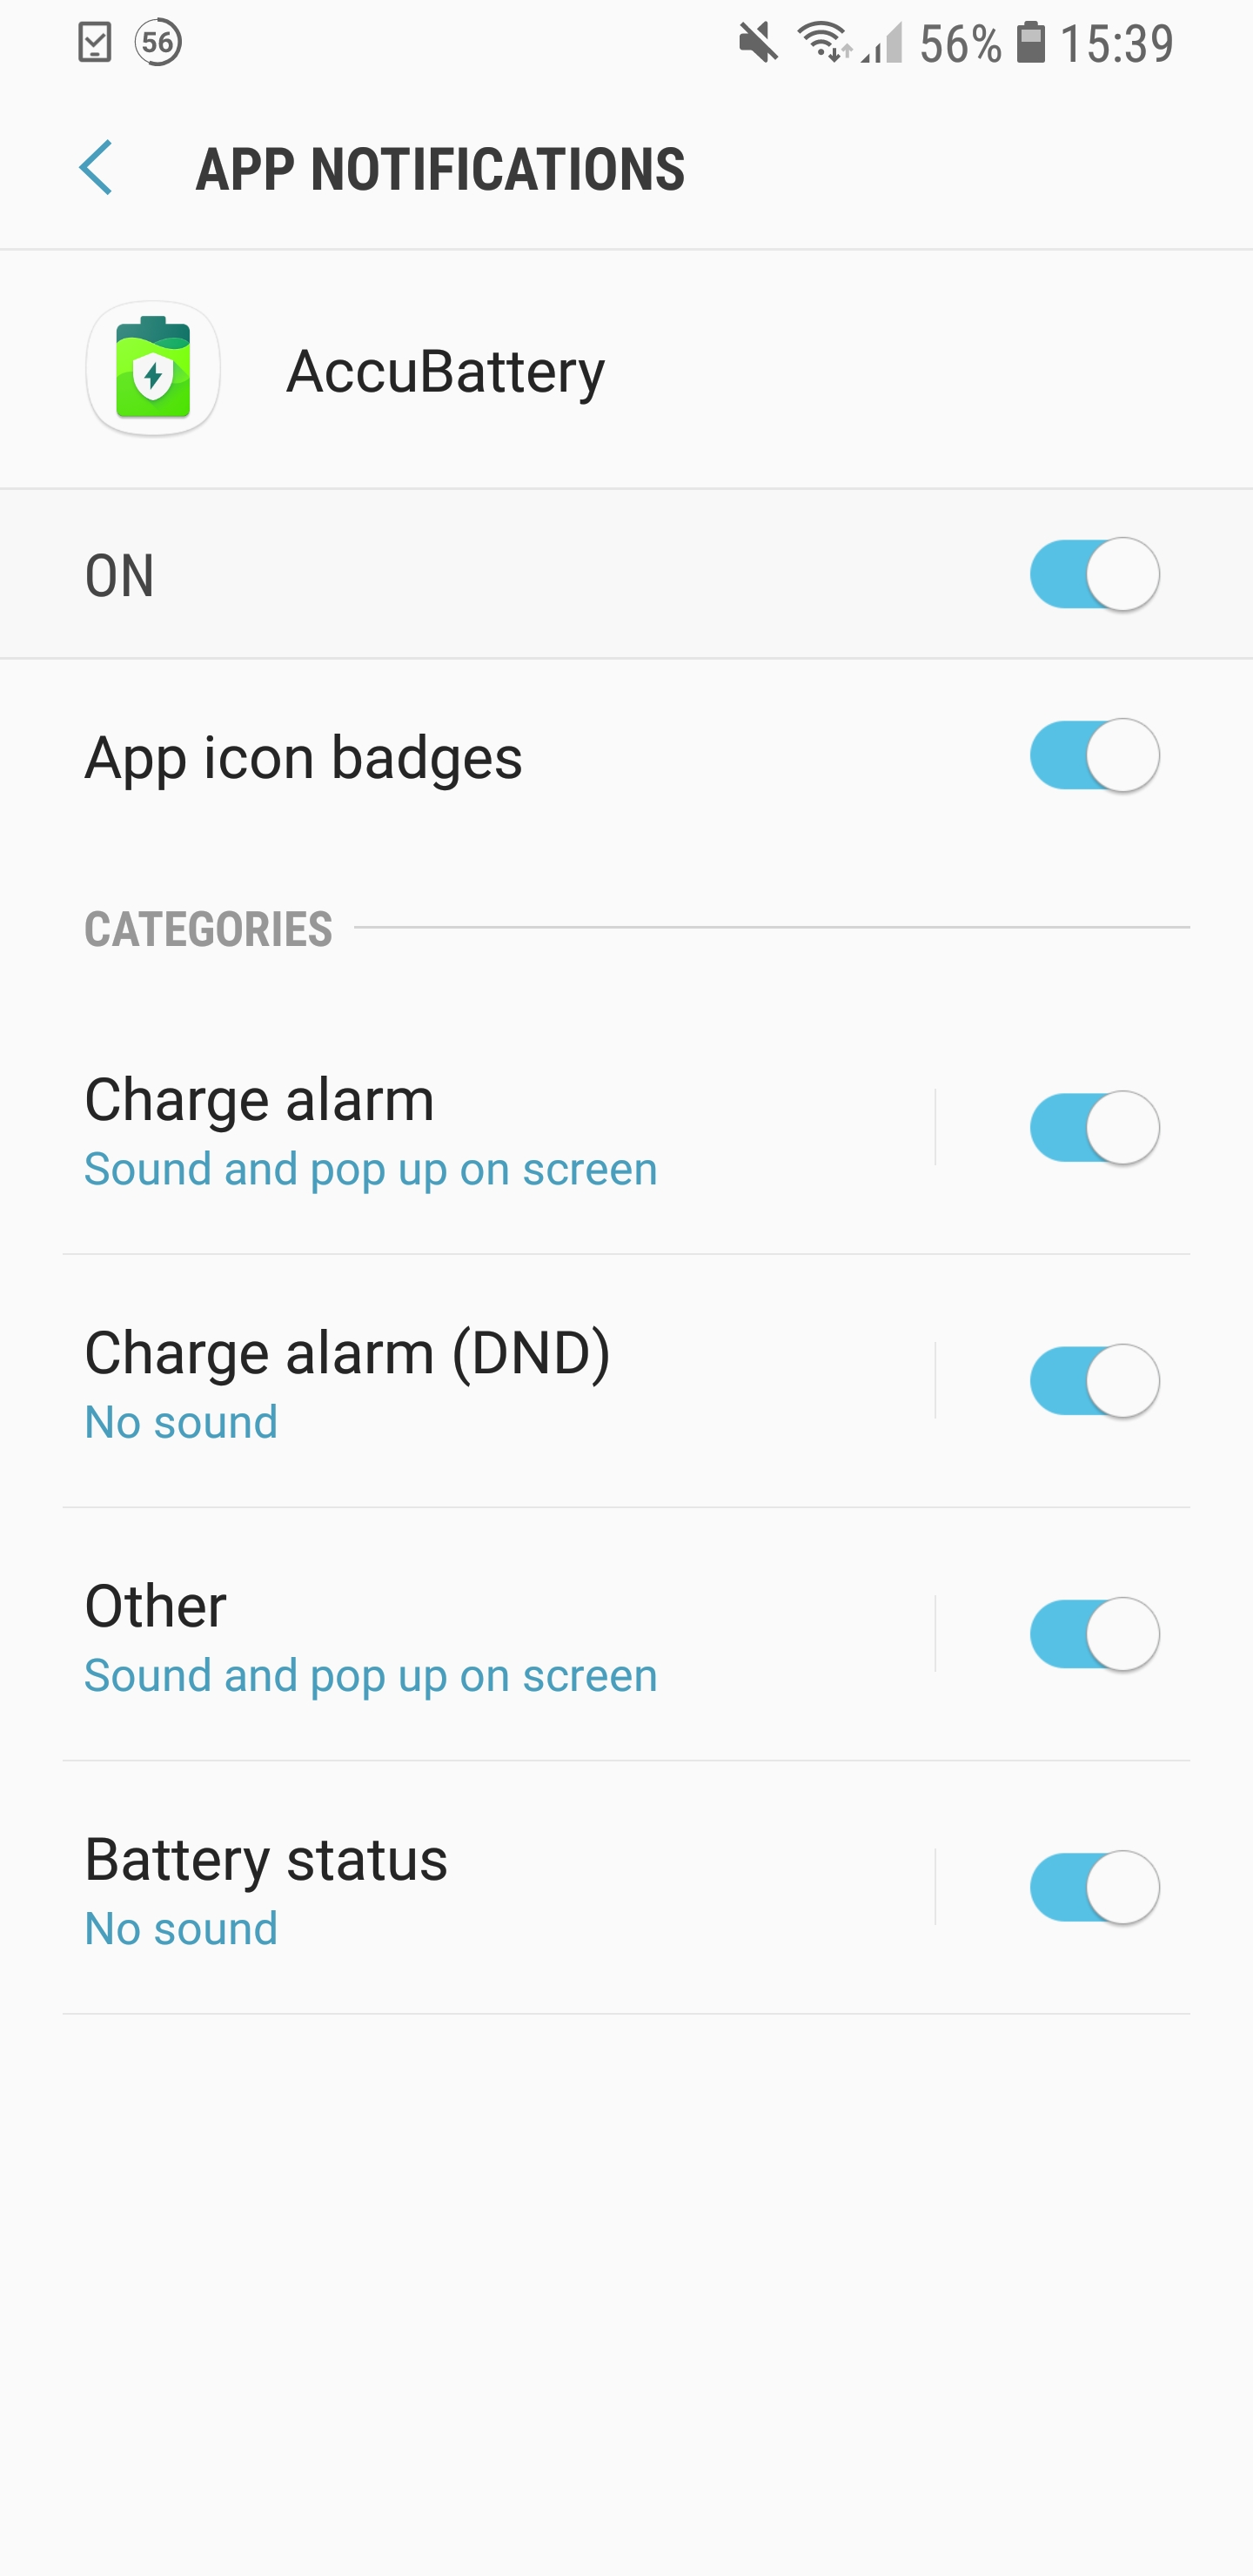 Changes to notifications and alarms in Oreo (priority